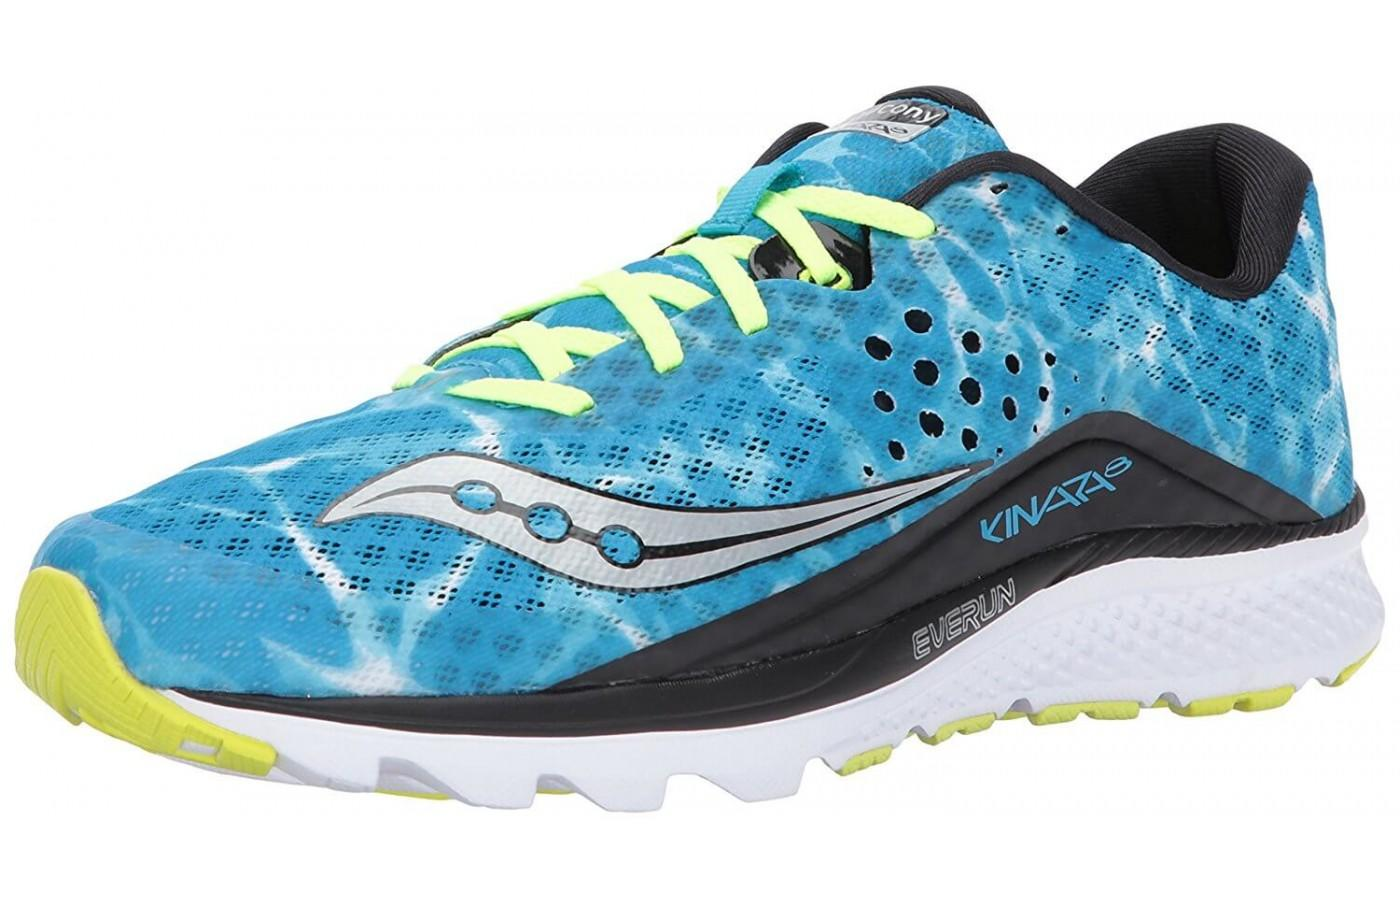 The Saucony Kinvara 8 shown from the front/side